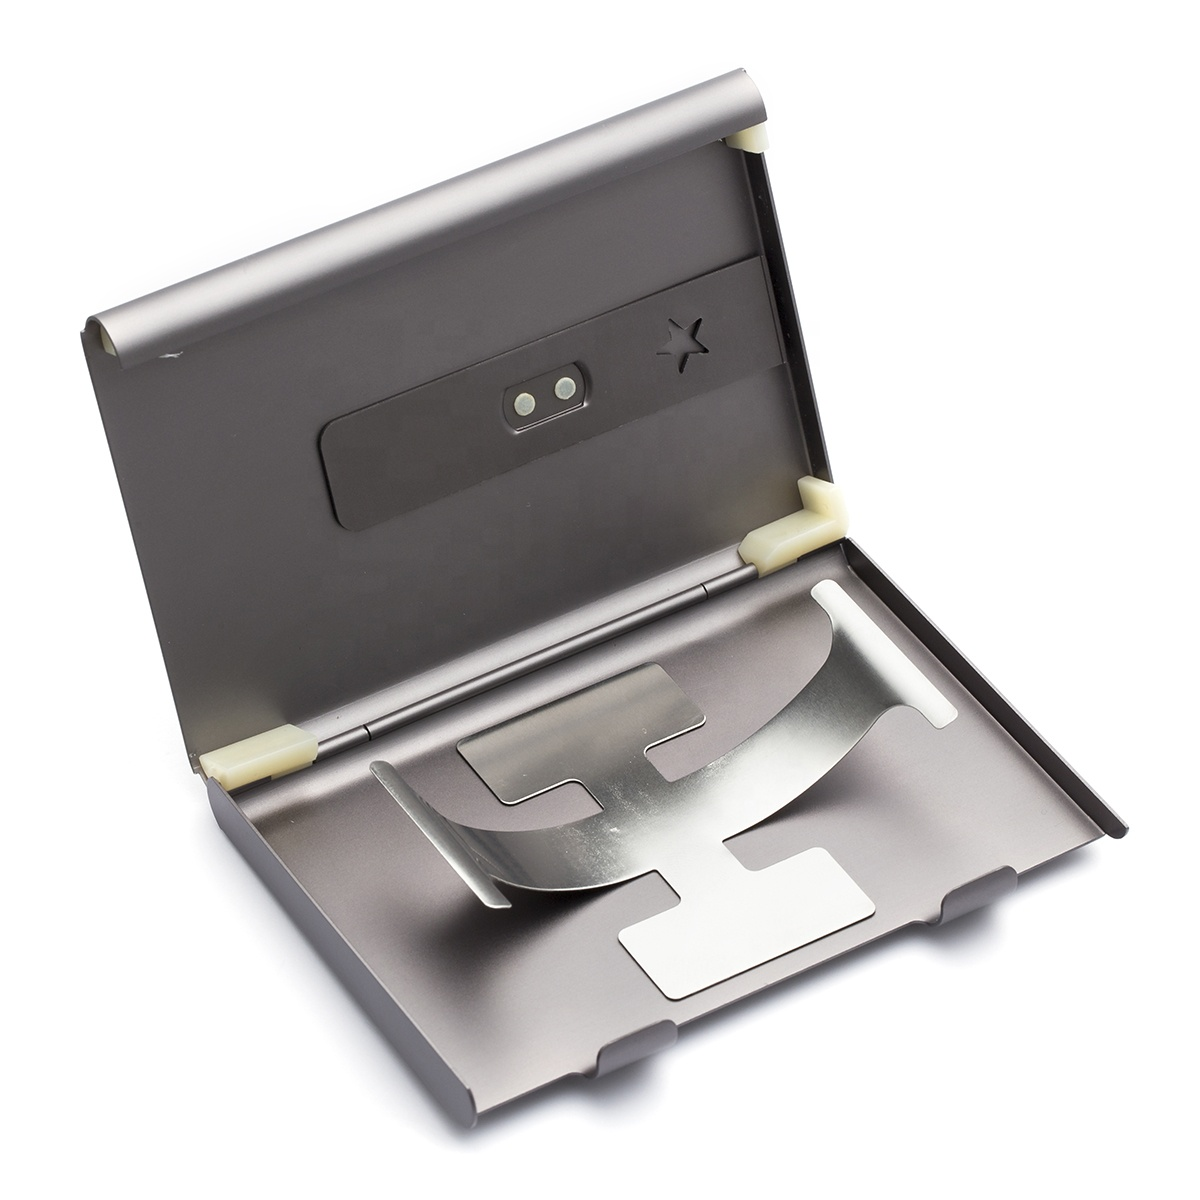 High quality business card holder